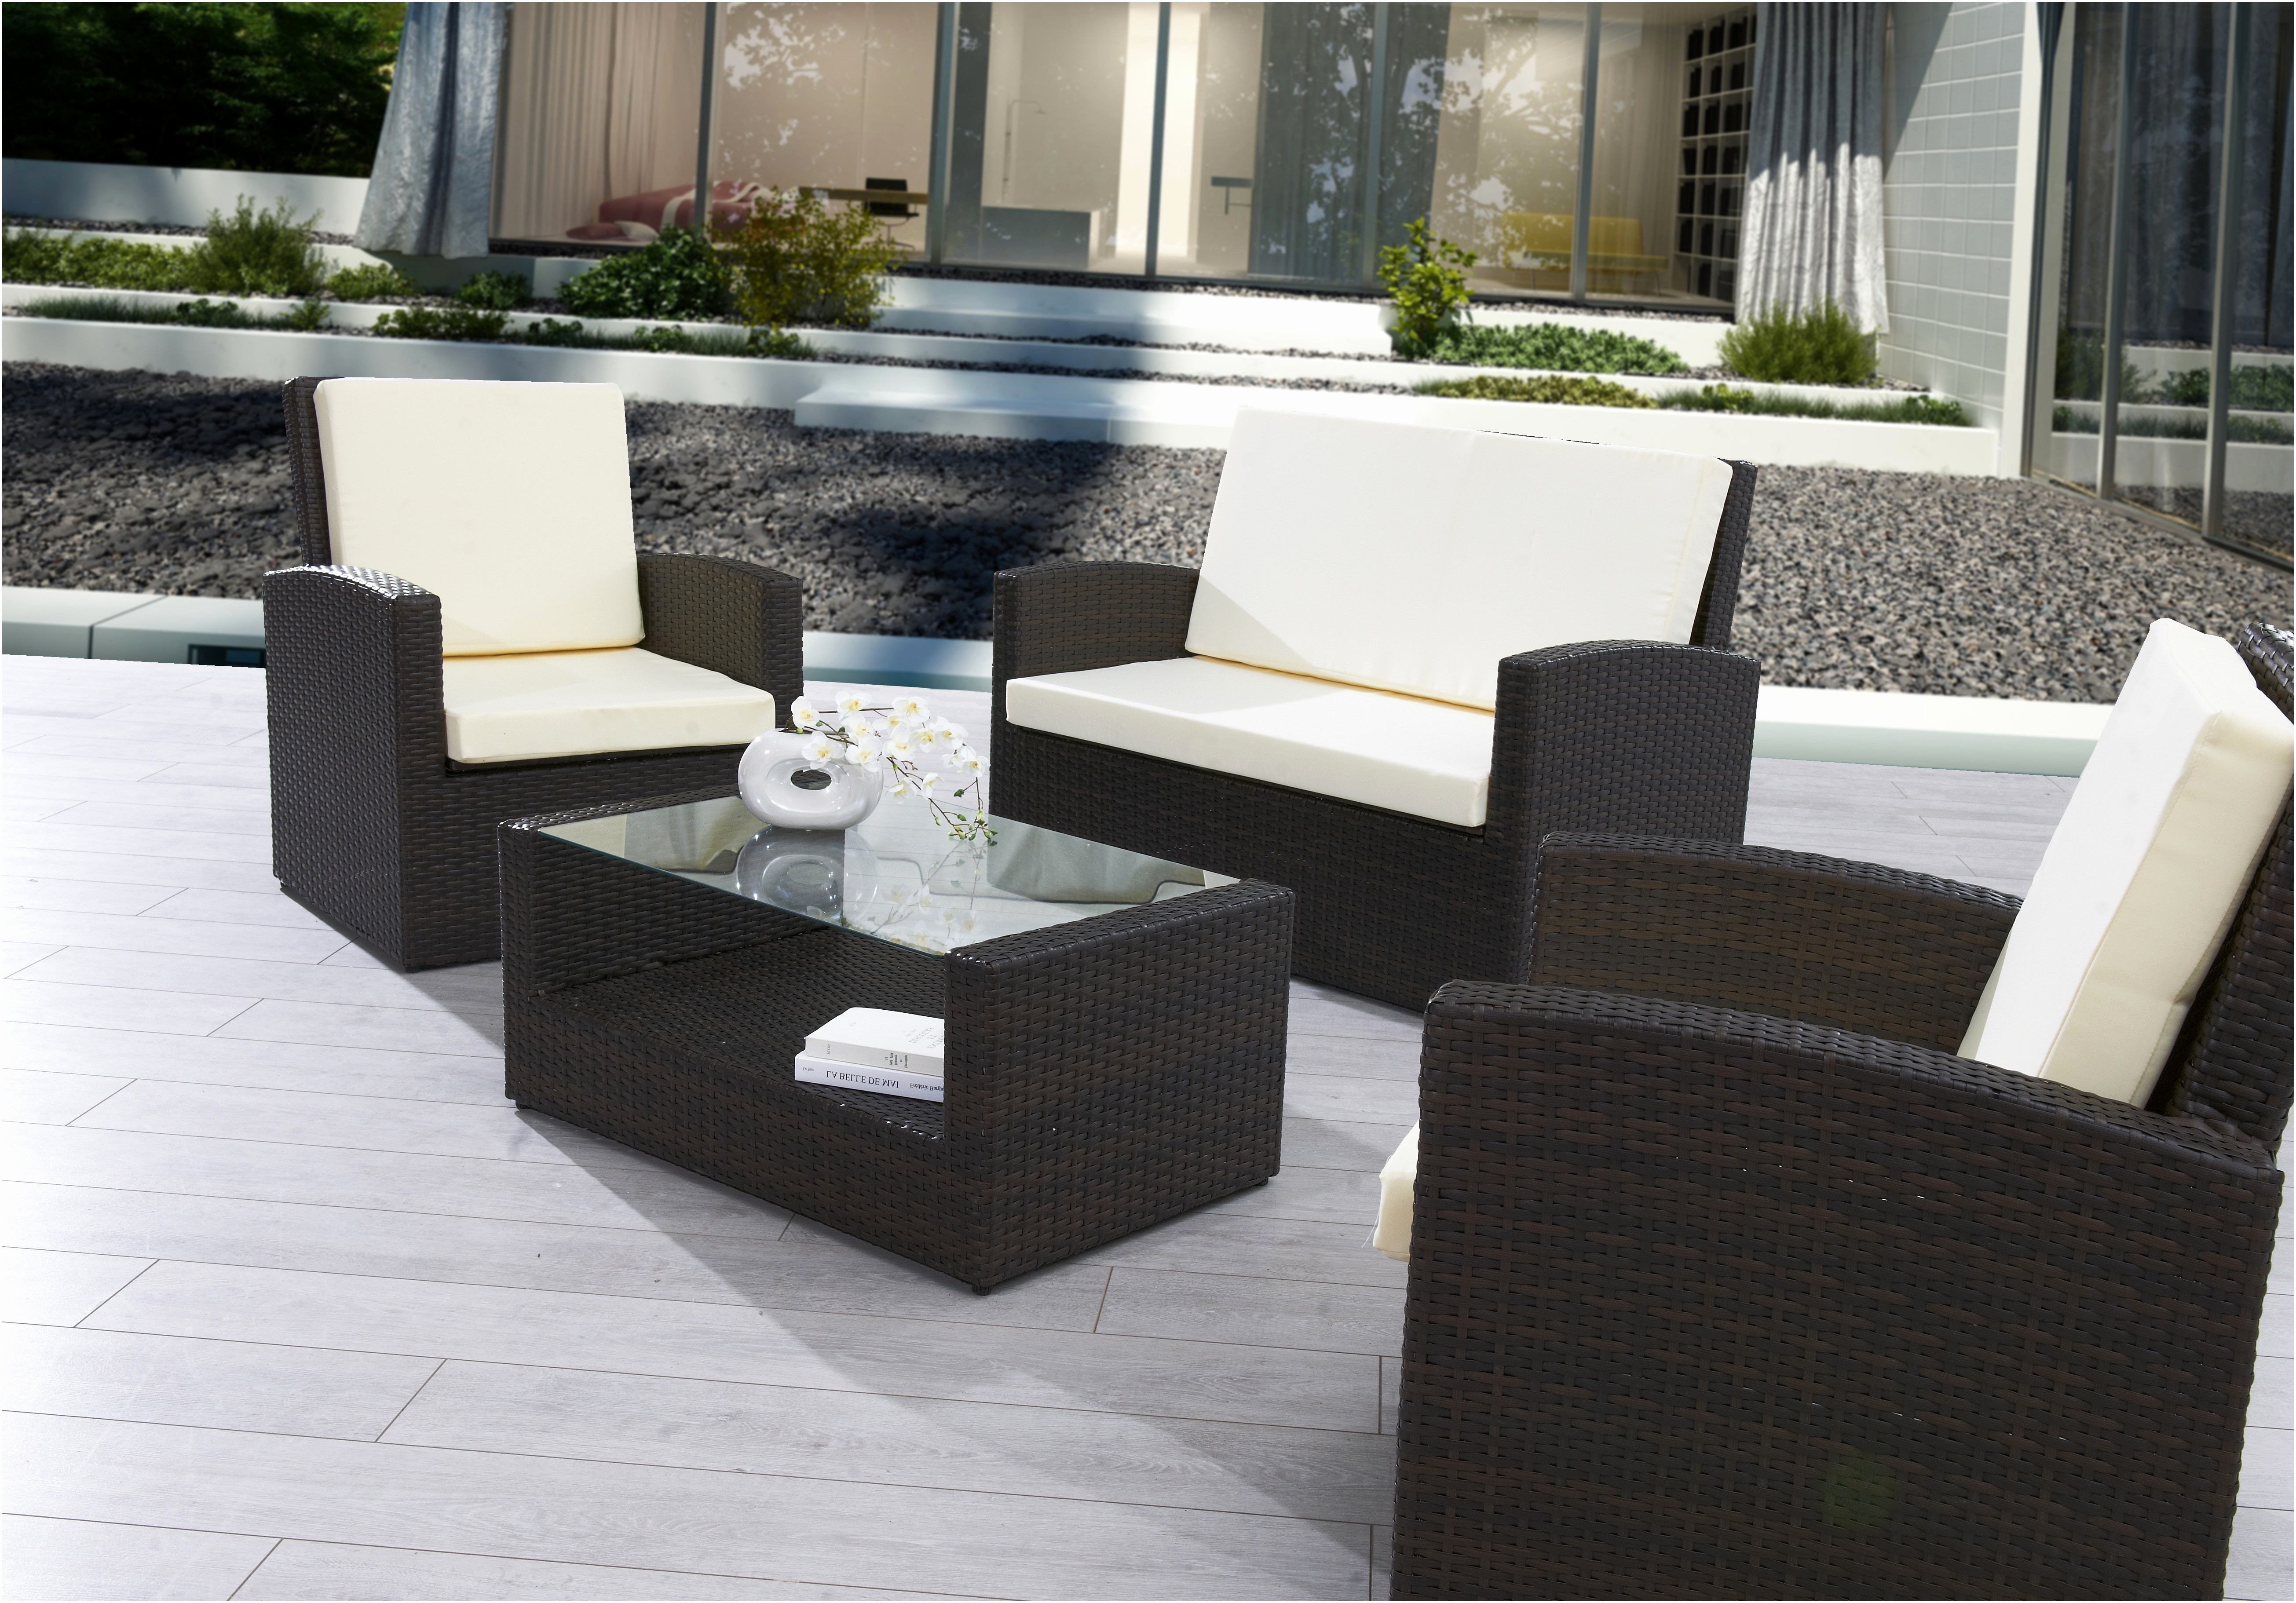 Salon Resine Tressee Leclerc Luxe Images Bain De soleil Leclerc Jardin Luxe Bain De soleil Leclerc Luxe 50